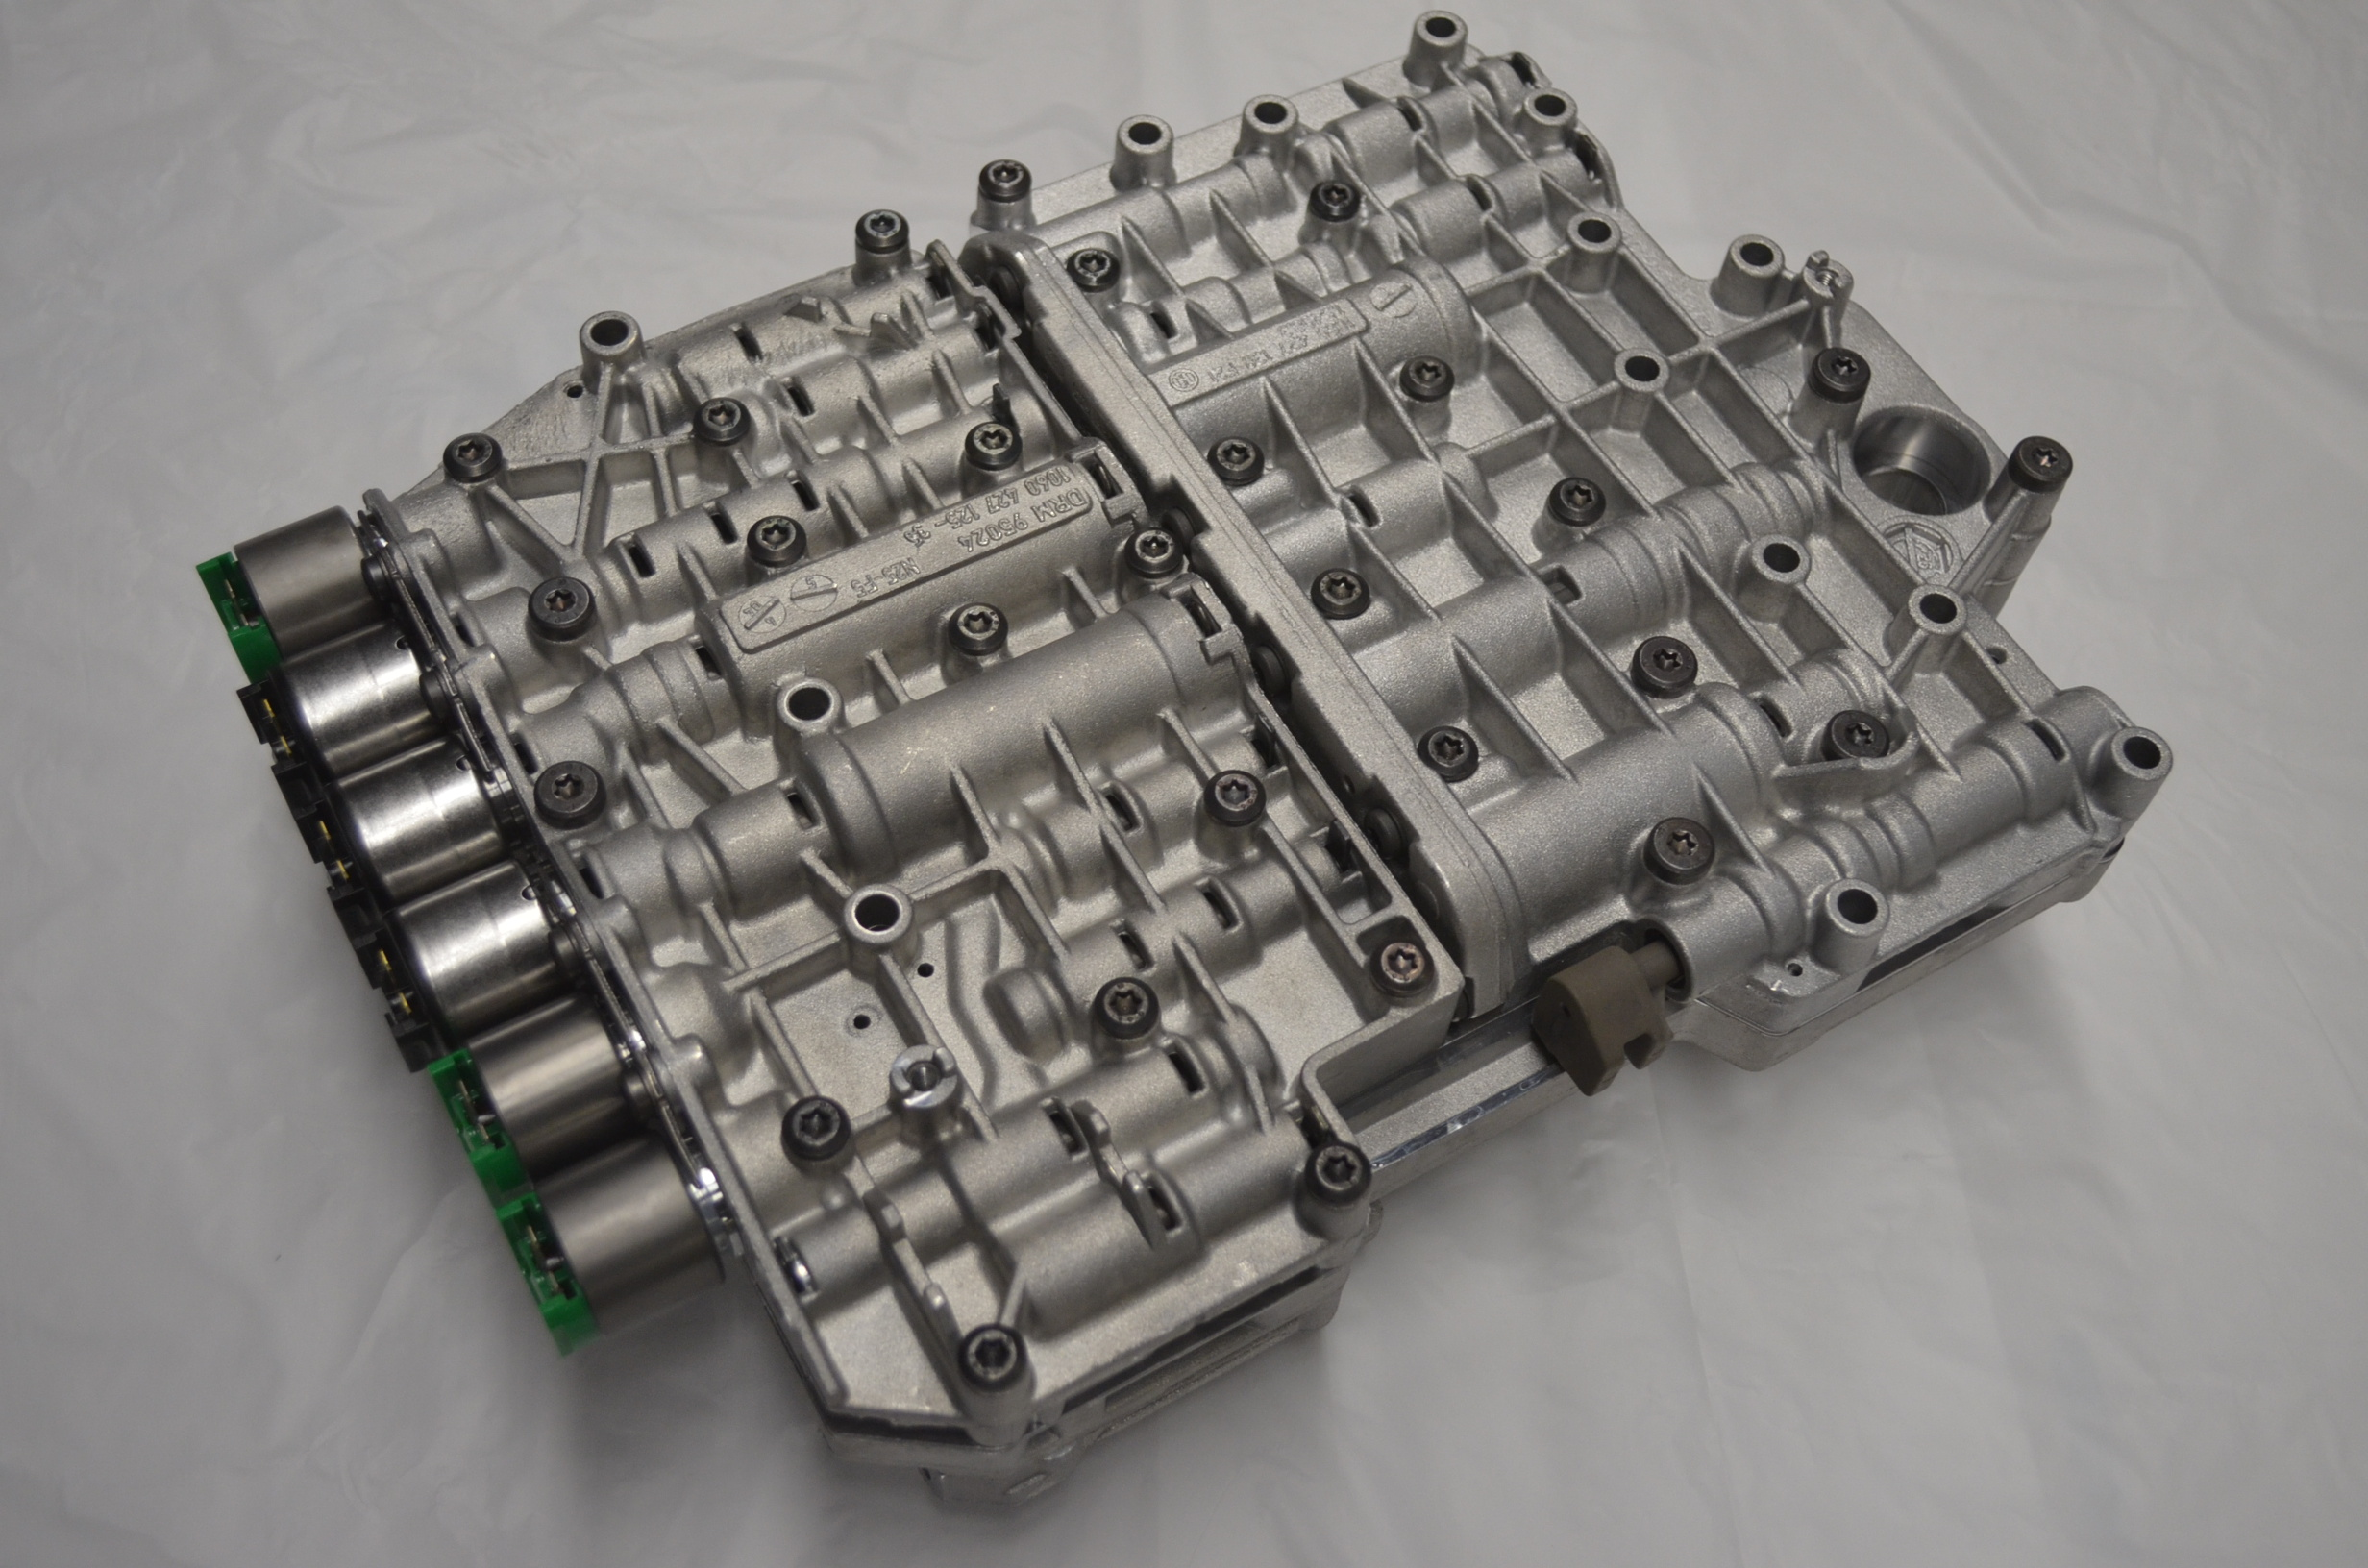 5hp19 valve body zf parts eriksson industries rh zftranspart com zf 5hp valve body manual zf 5-speed valve body manual